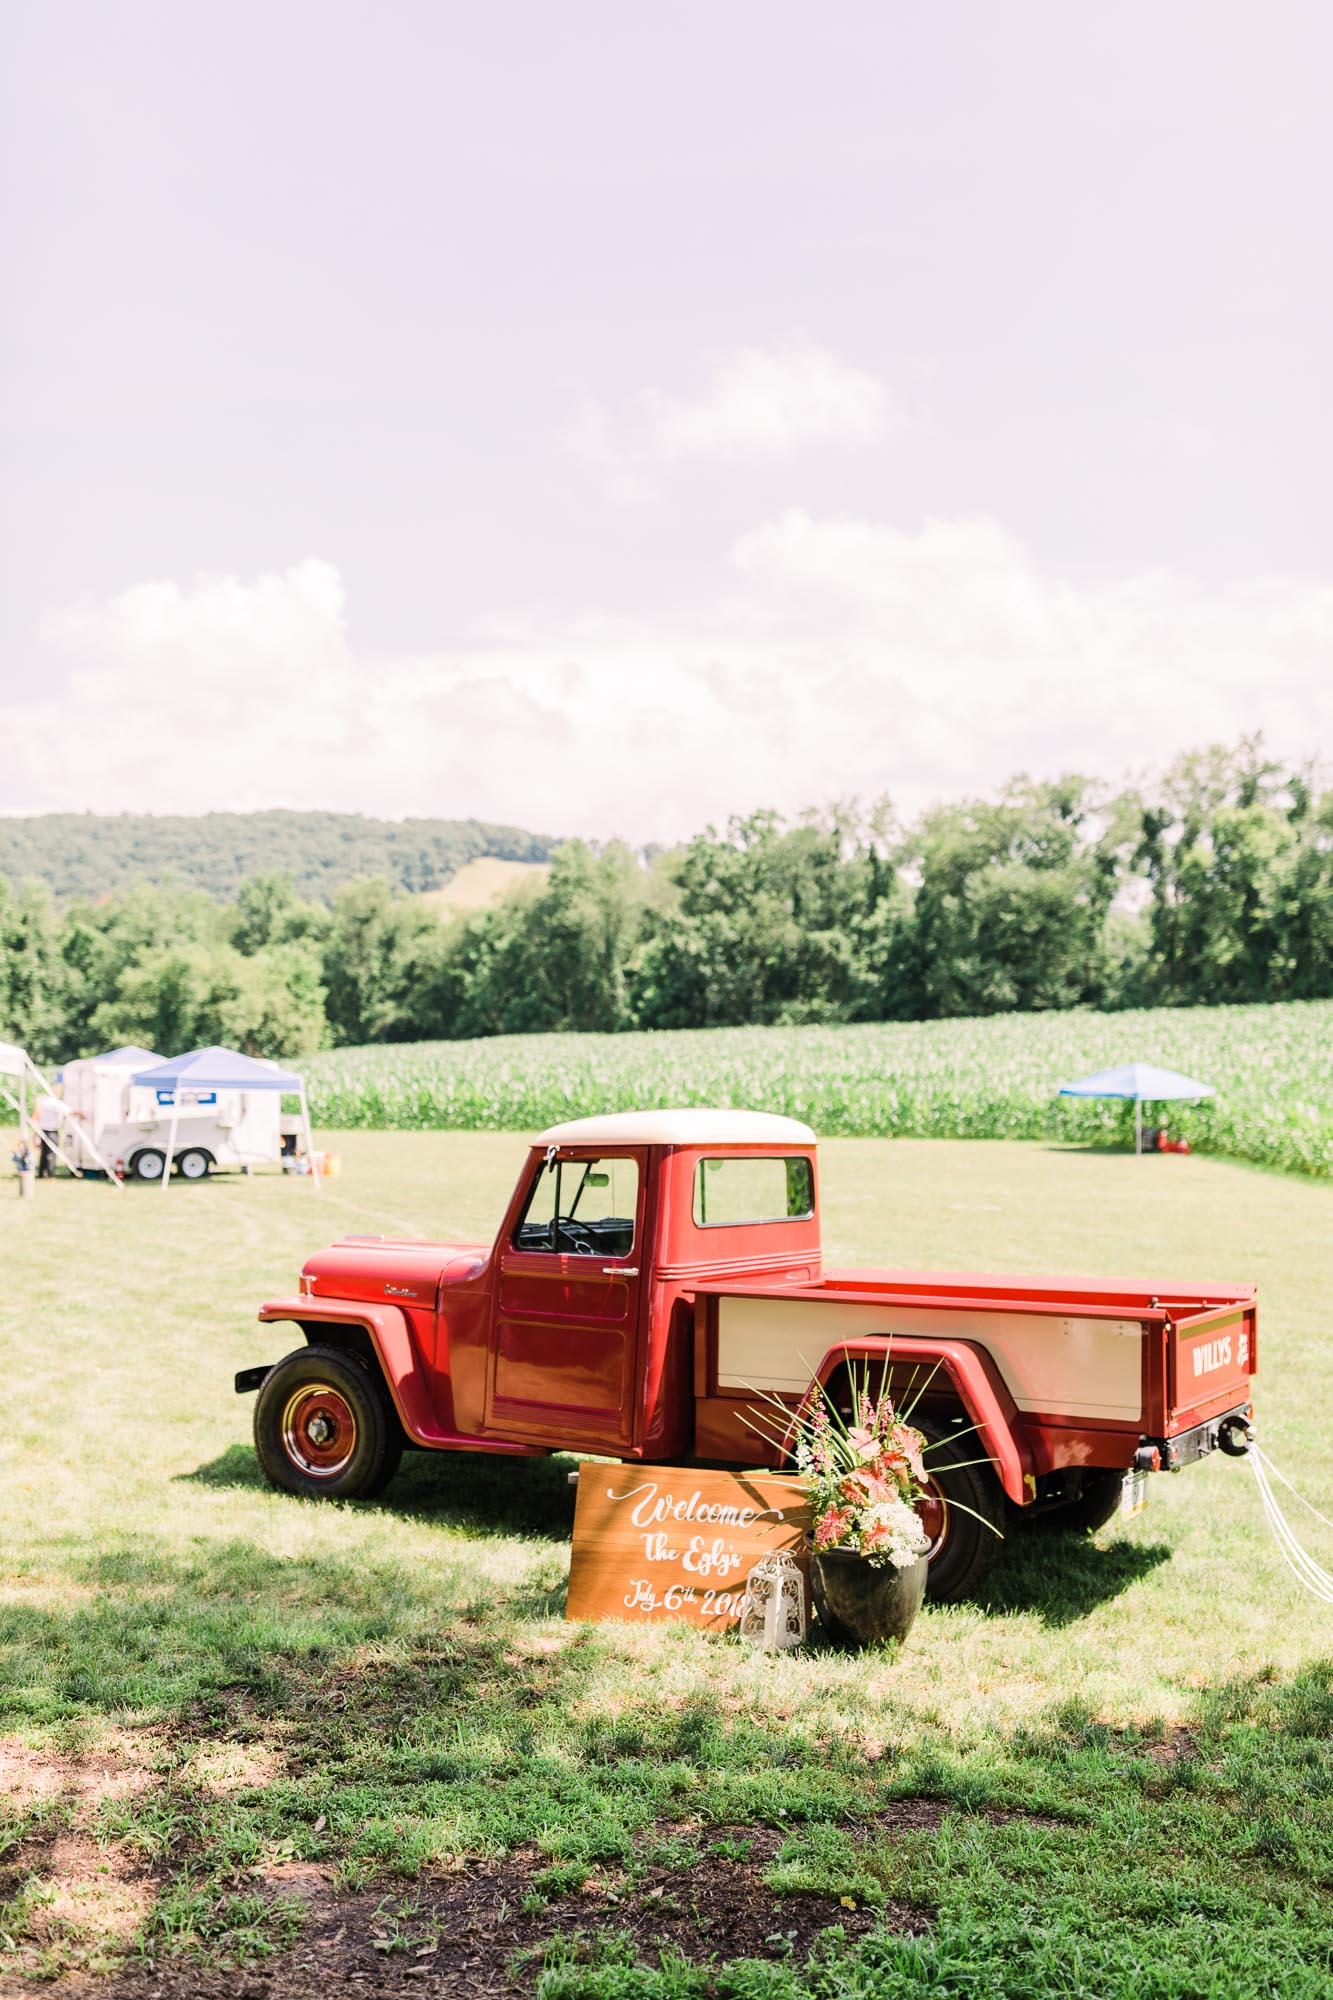 Muncy-backyard-farm-wedding-7637.jpg